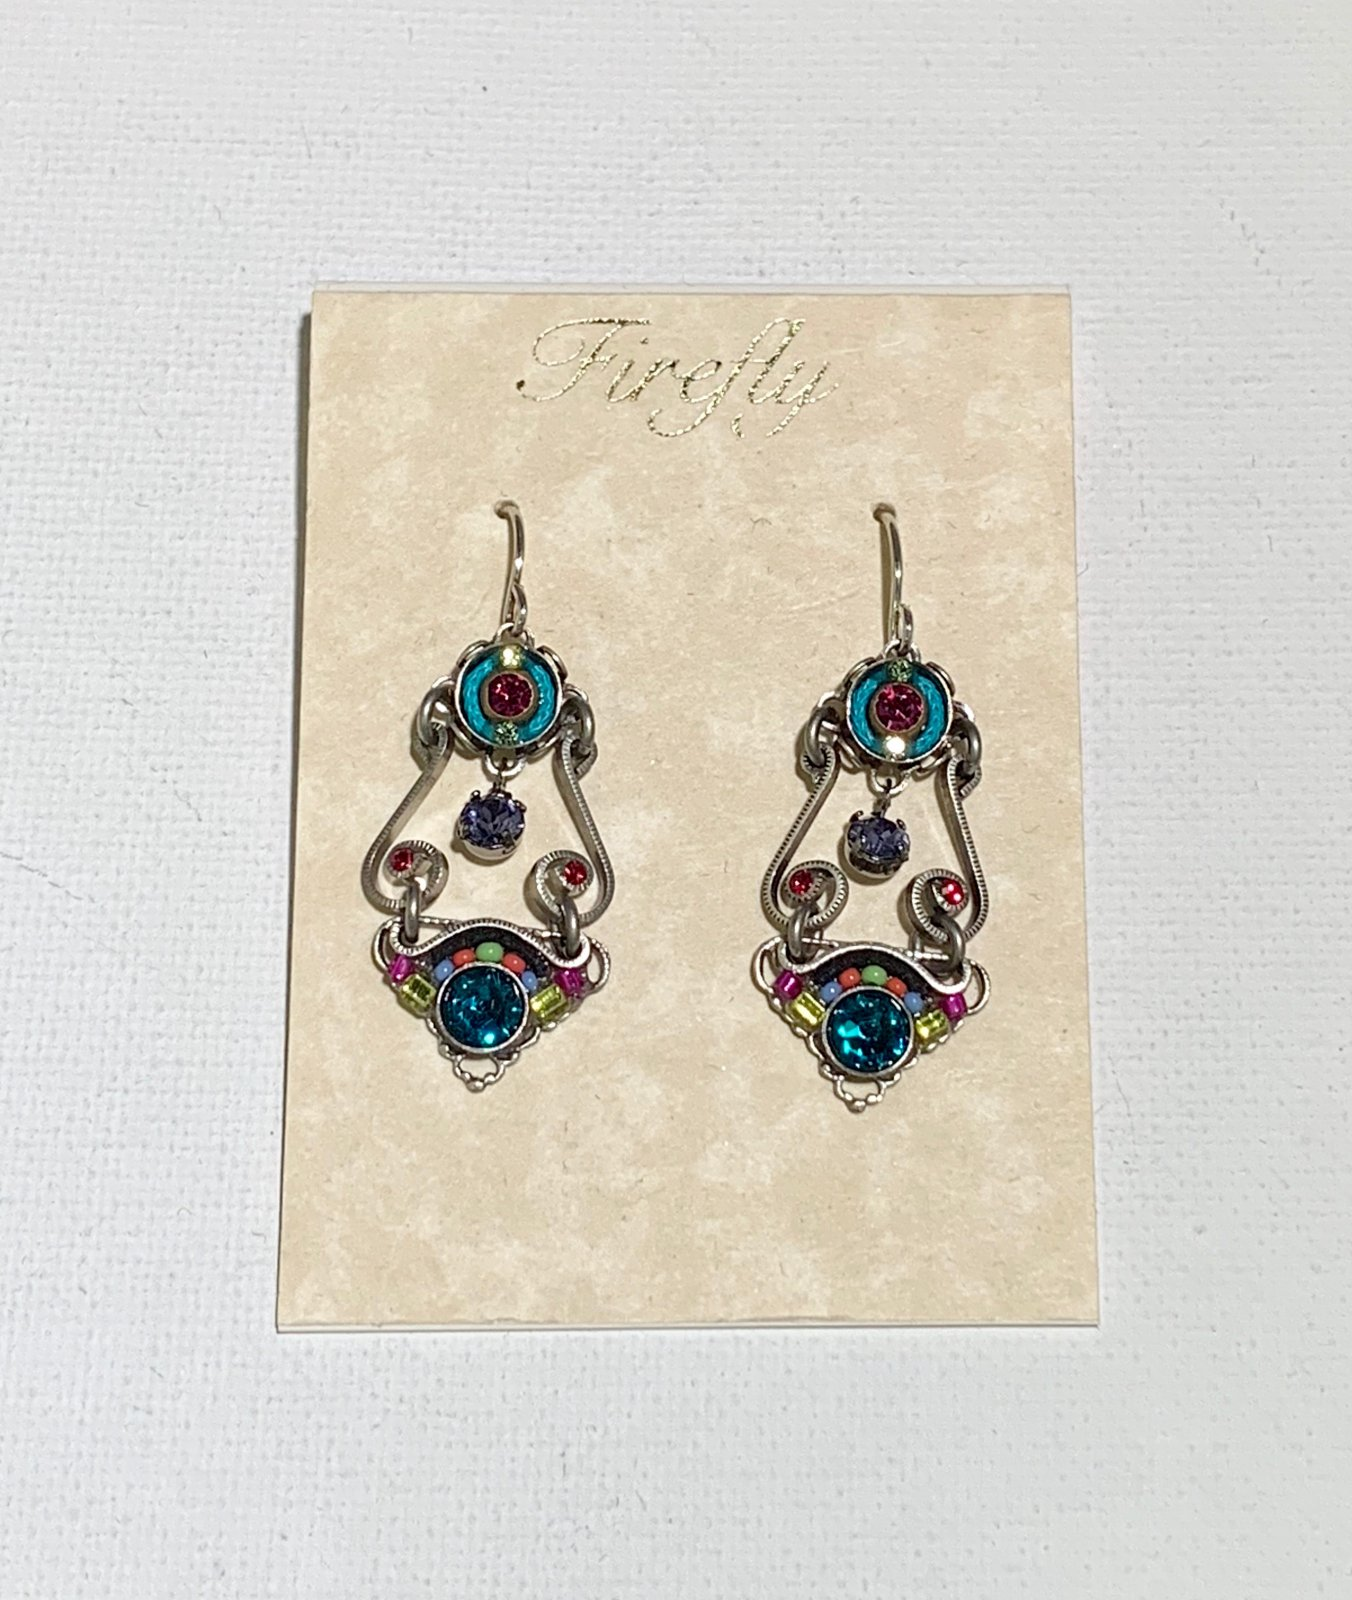 Glamorous Lupe Earrings